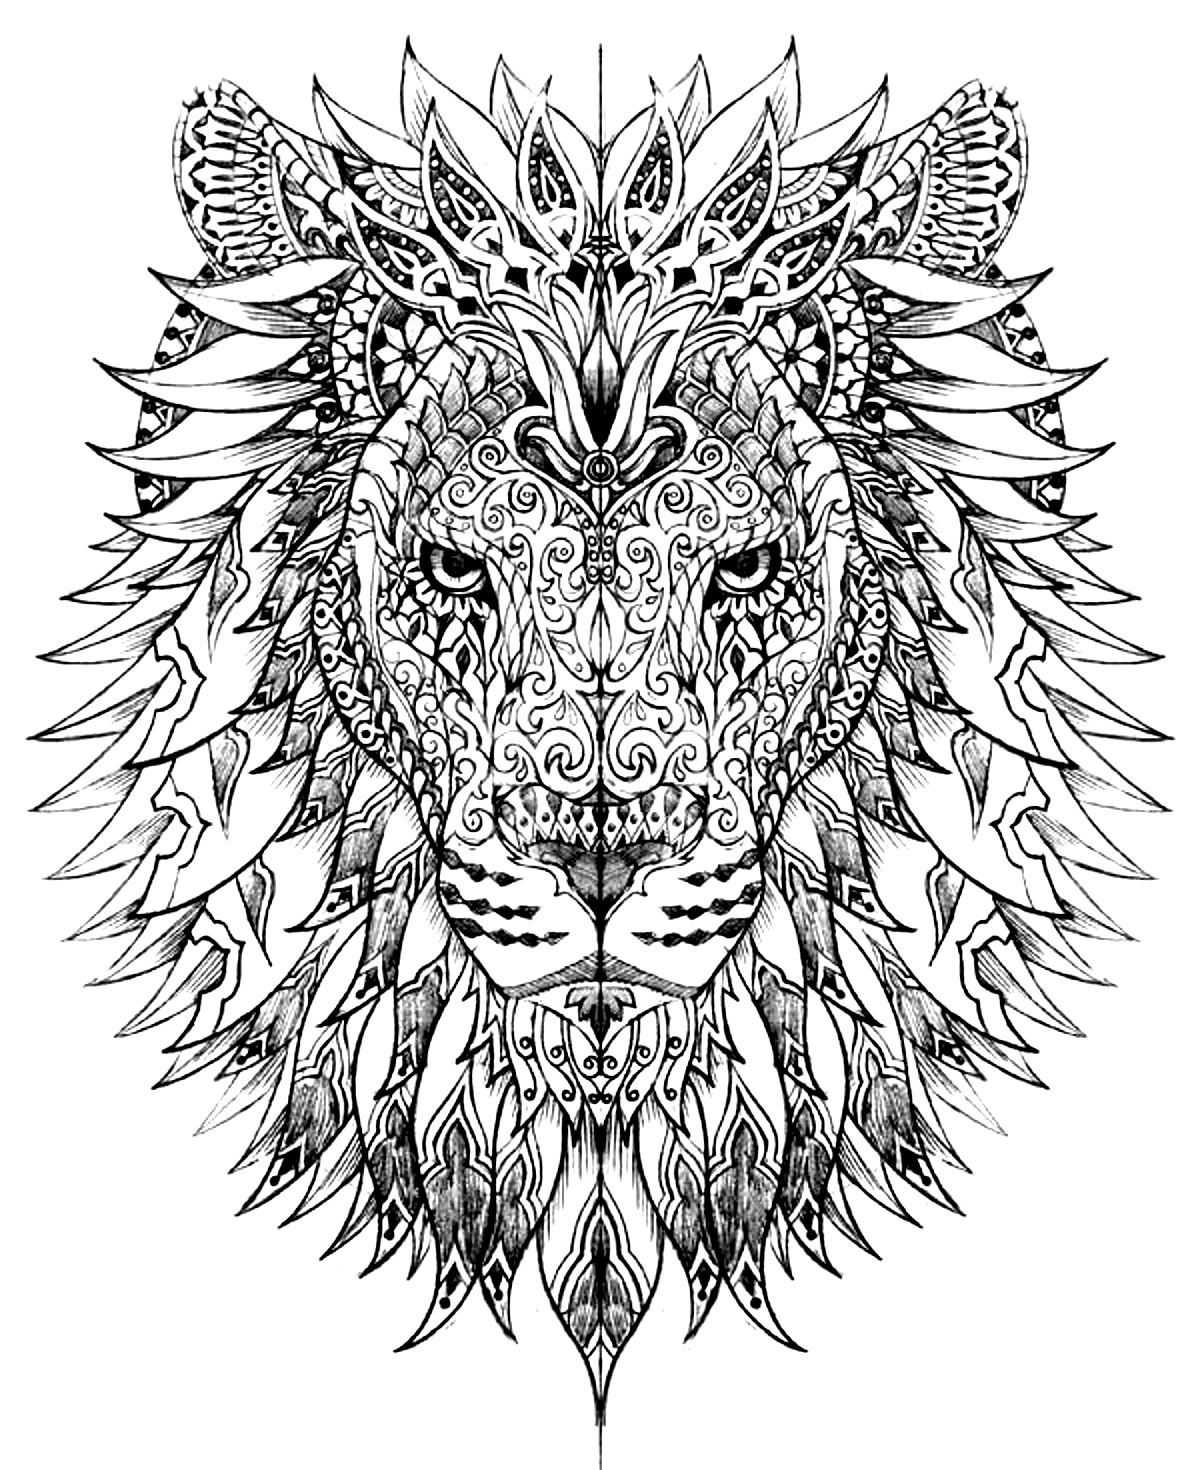 printable pictures to color for adults animal coloring pages for adults best coloring pages for to color pictures adults printable for